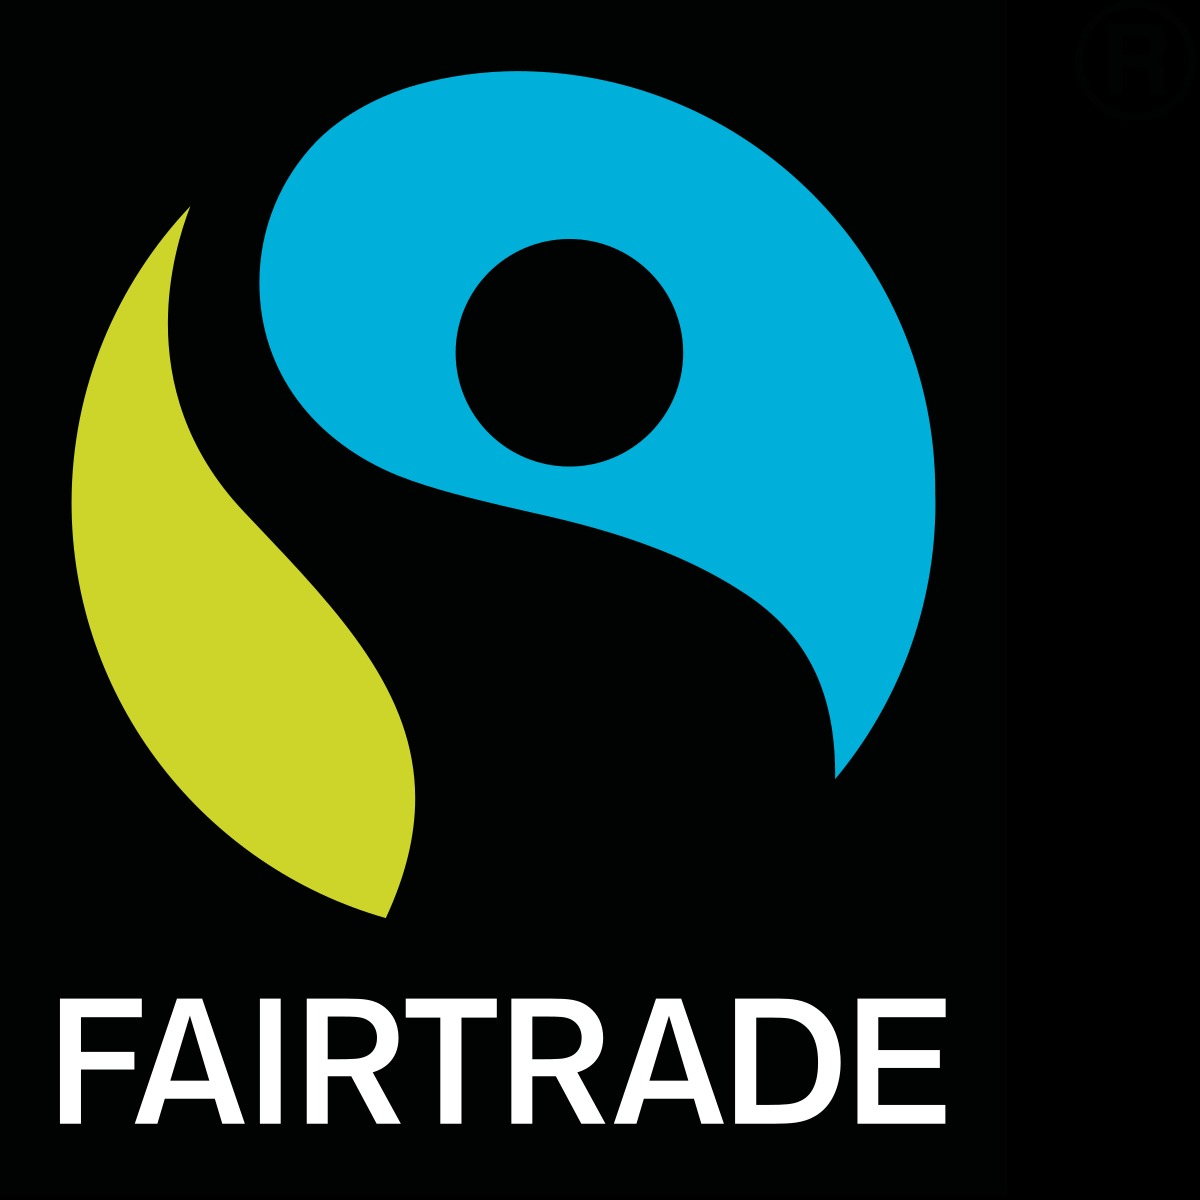 Dinas Powys has been names as 'Place of the Day' for Fairtrade Fortnight